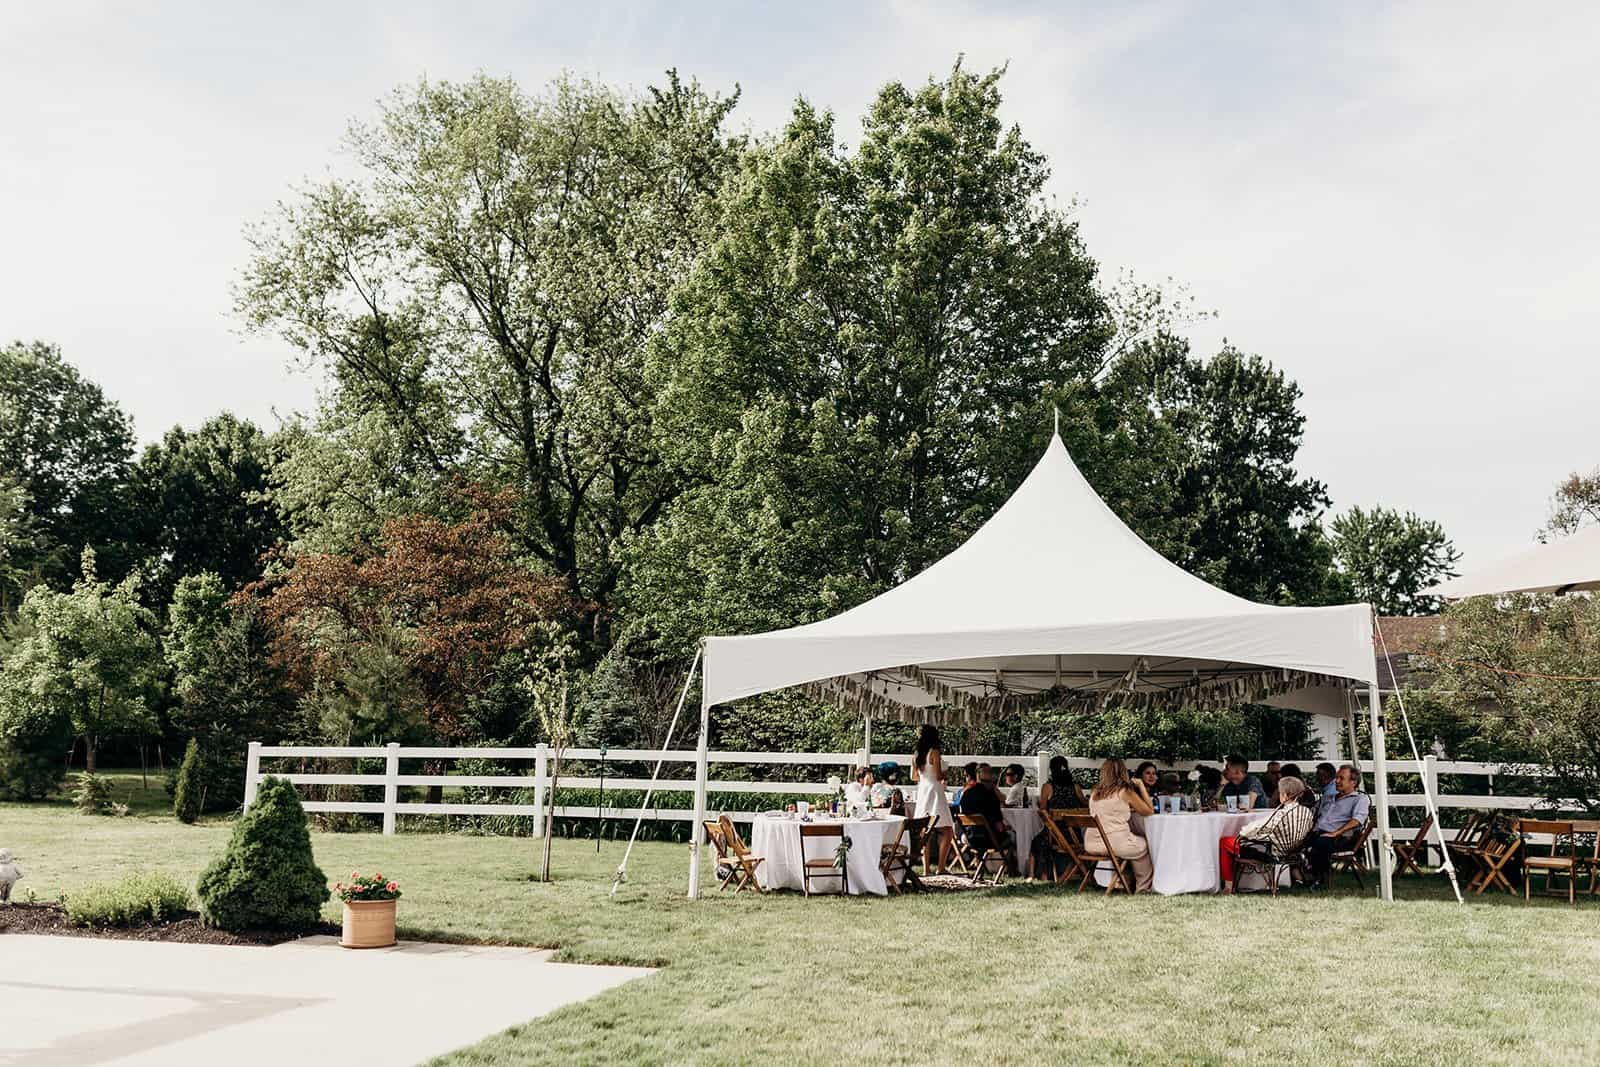 Backyard wedding tent with guests inside